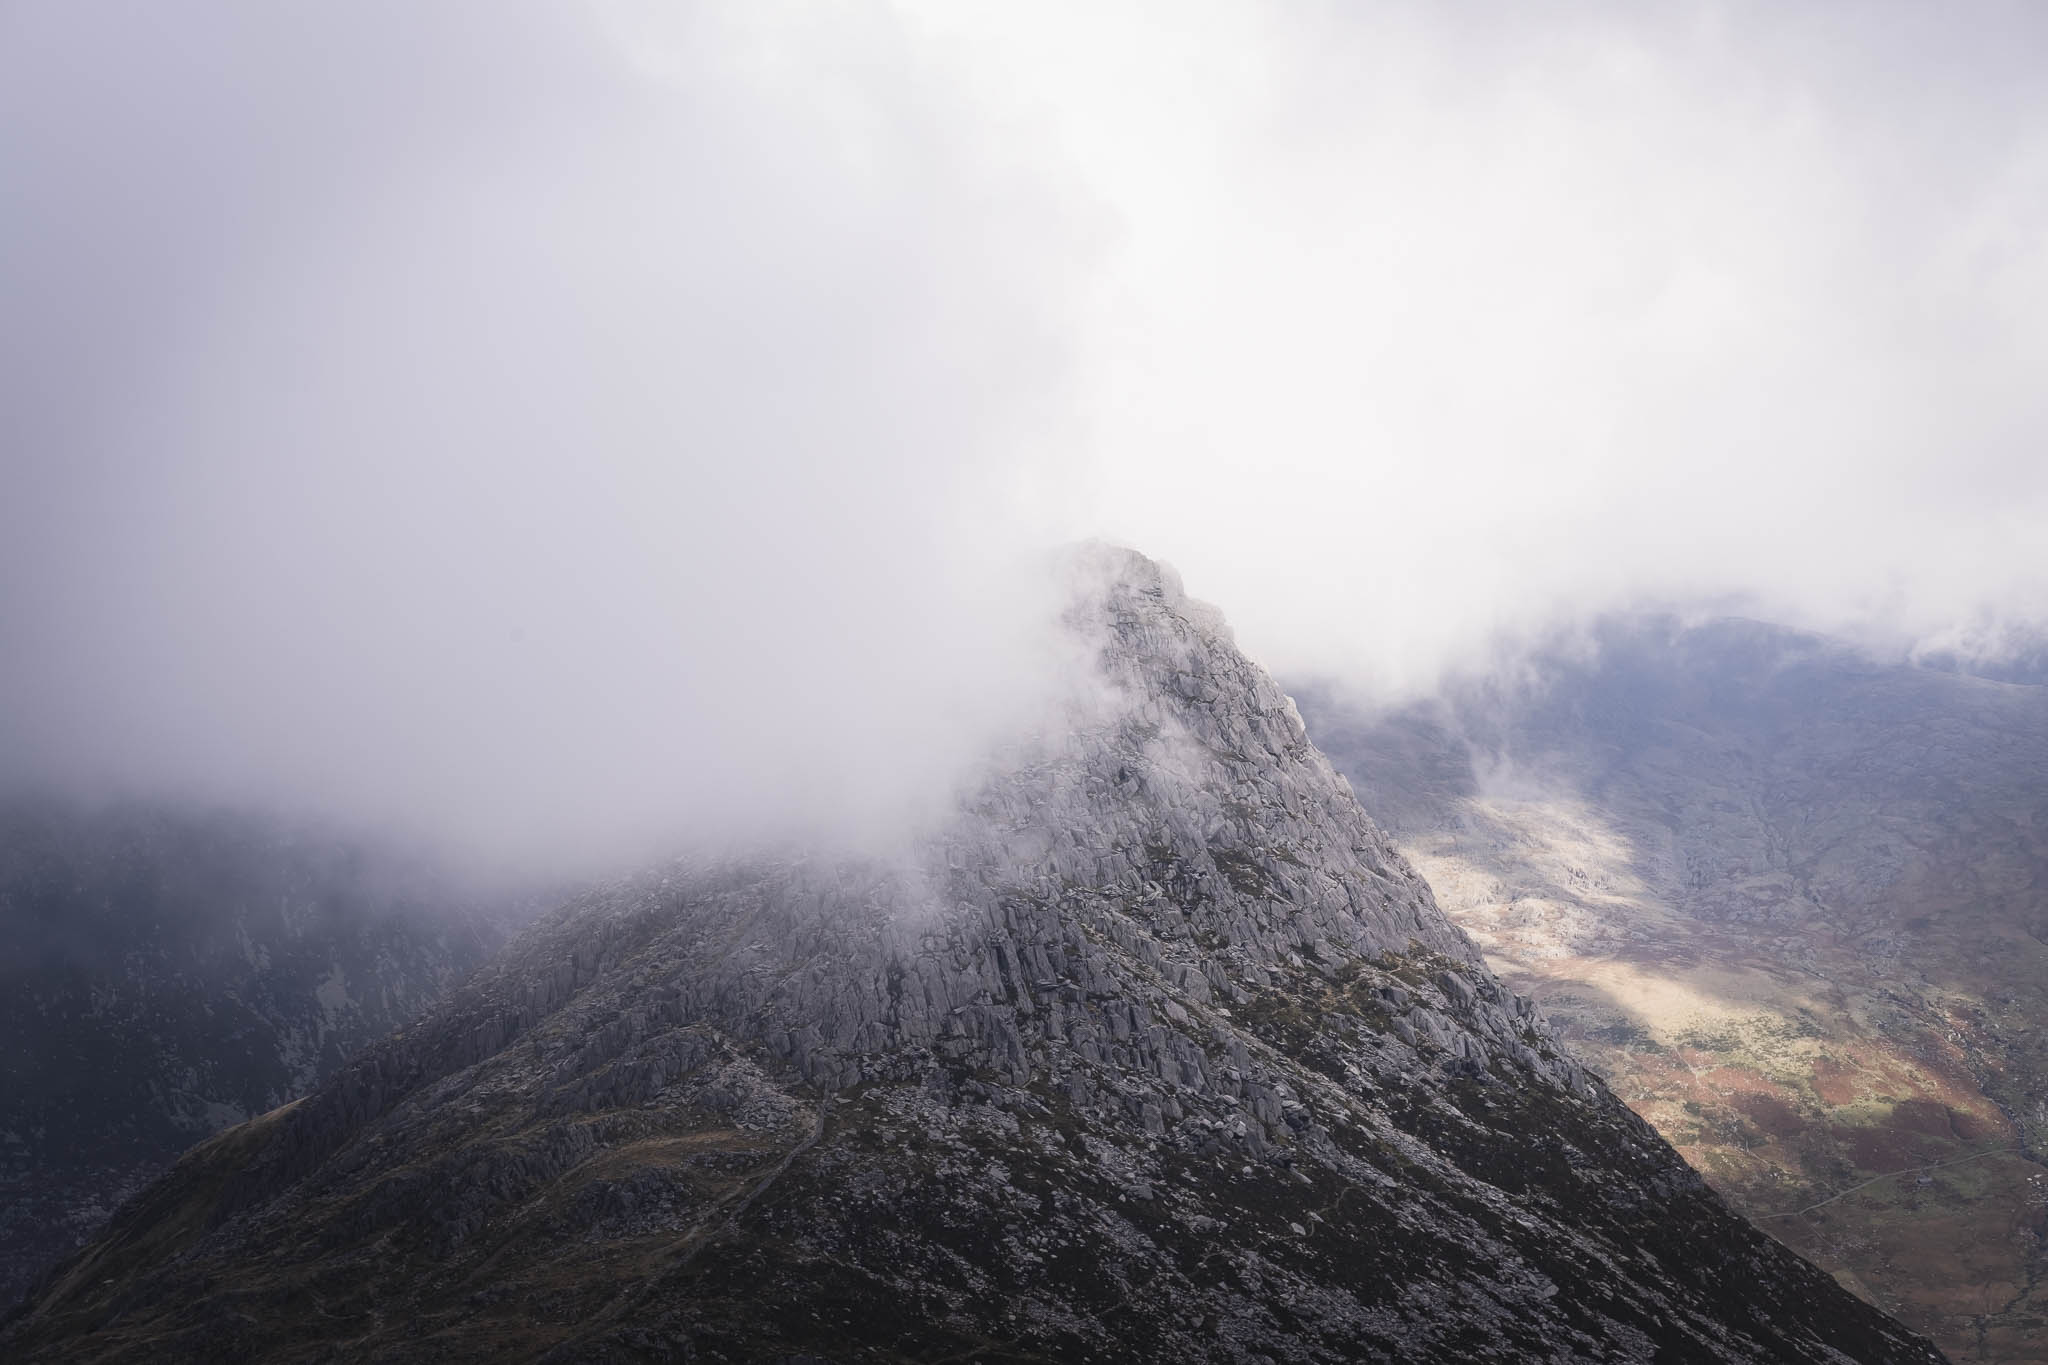 Backpacking around Tryfan in Snowdonia